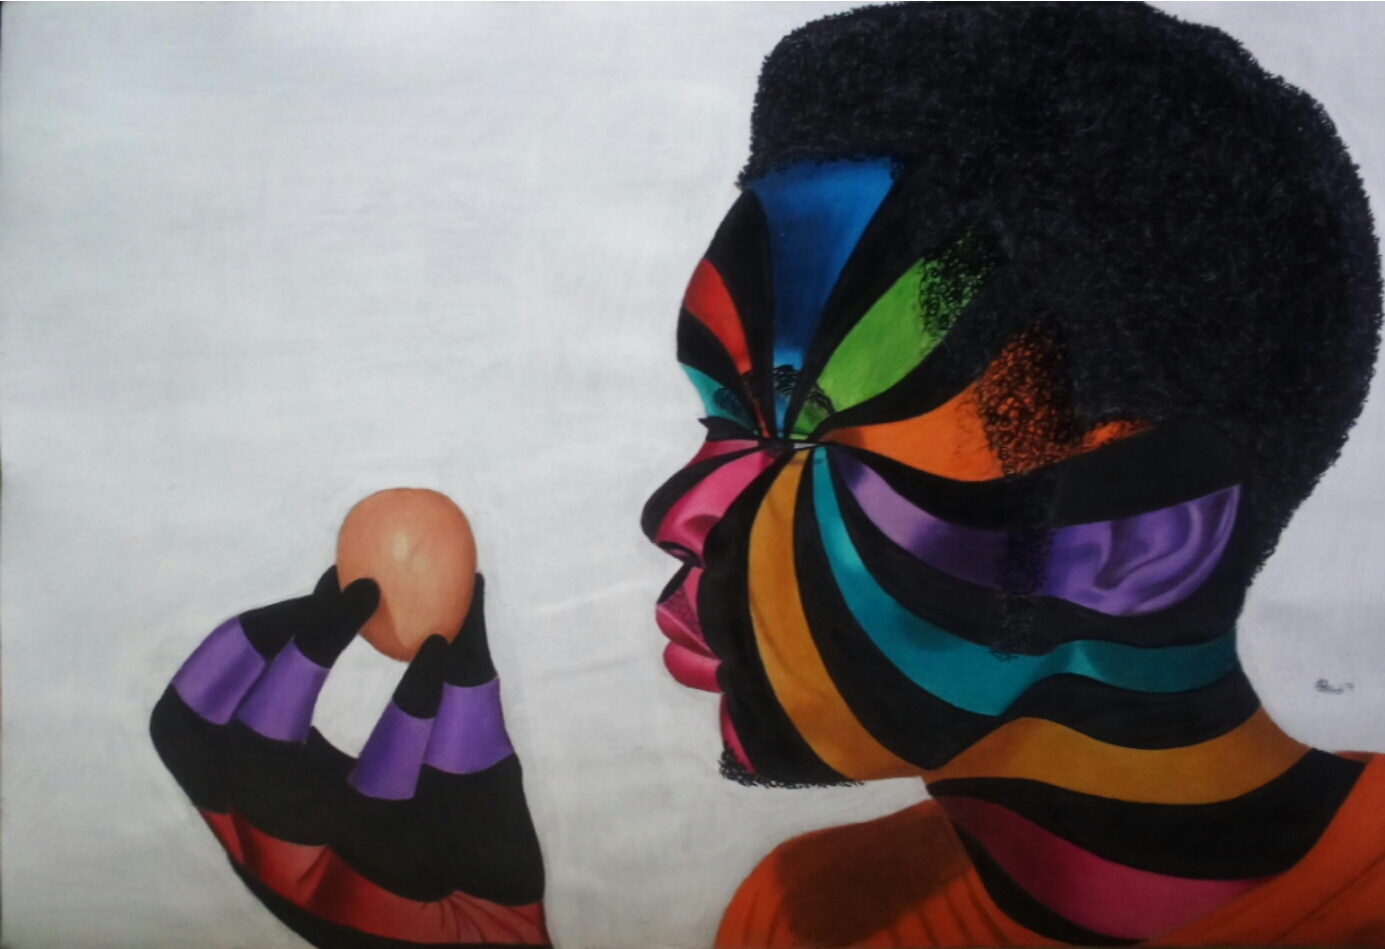 Visual art by Olawale - the spark youth empowerment platform in nigeria